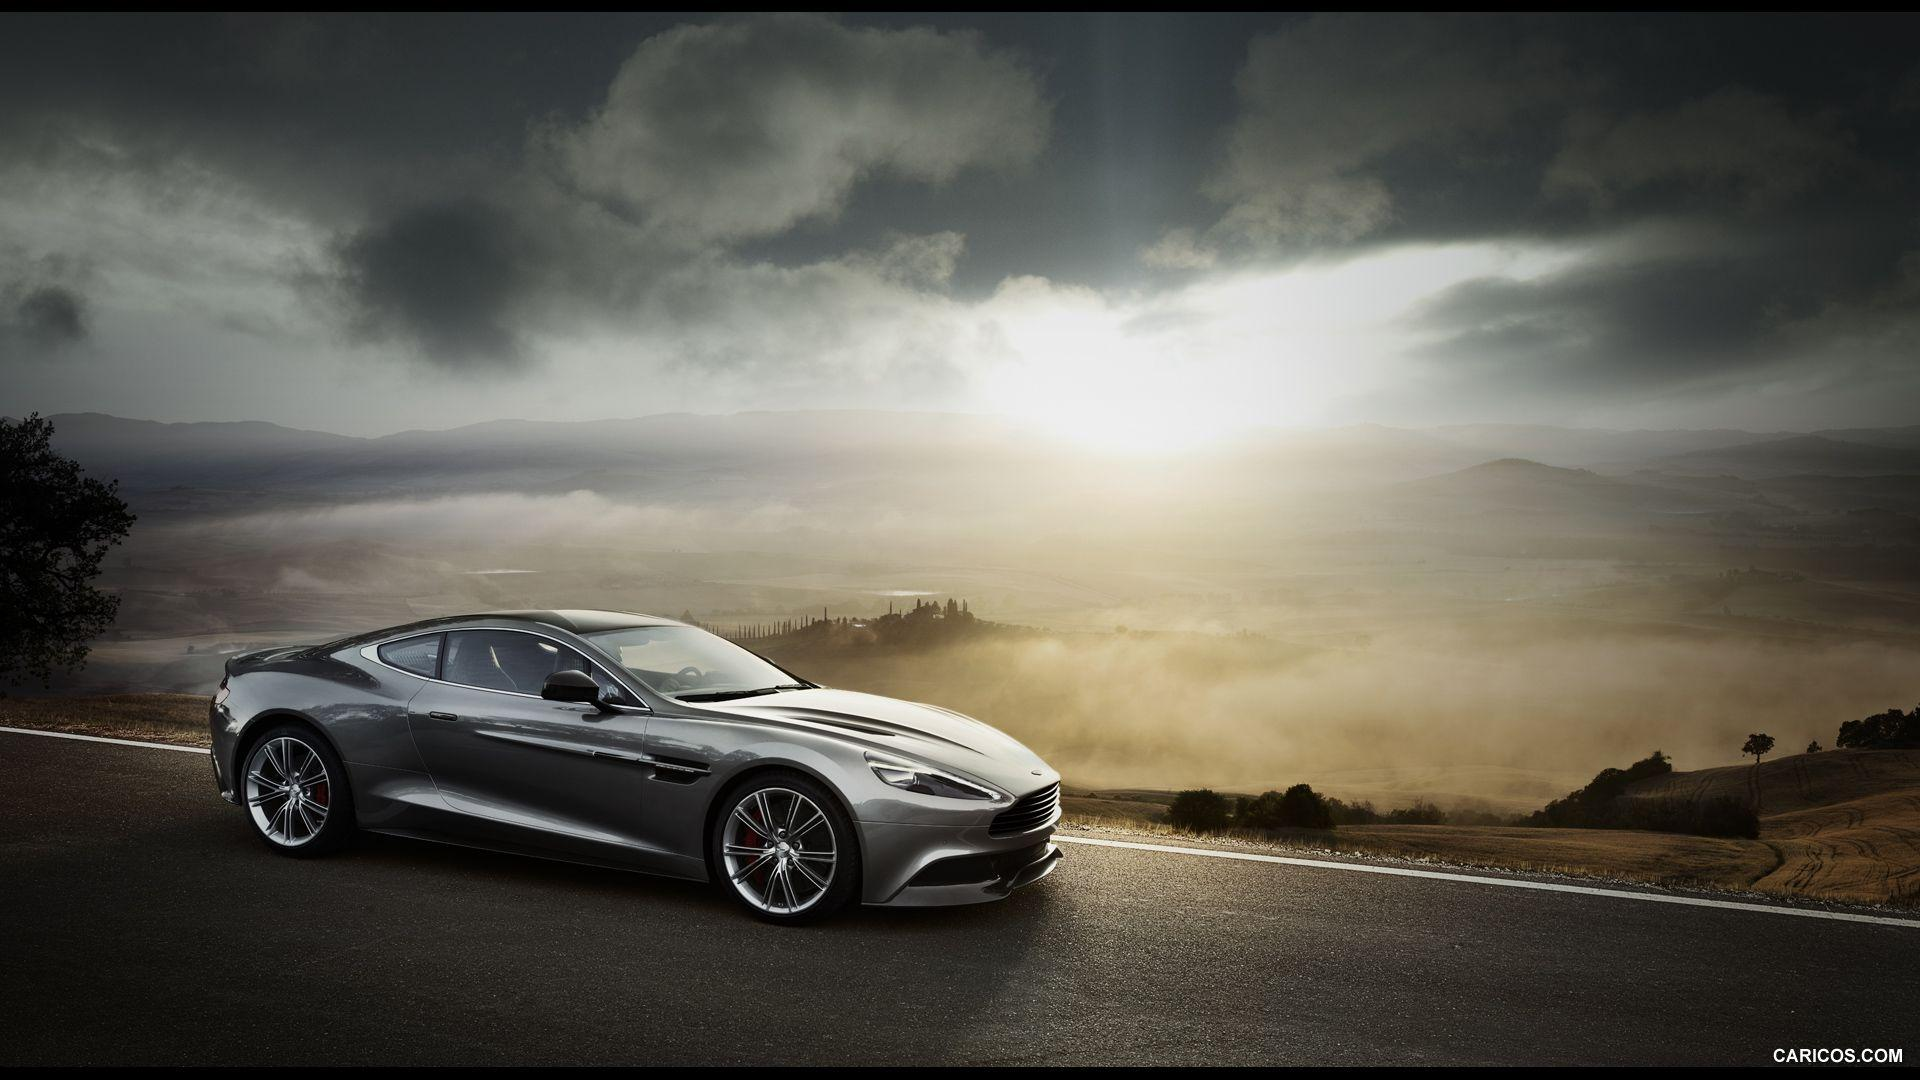 Wallpaper Blink Best of Aston Martin DB Wallpapers HD for Android